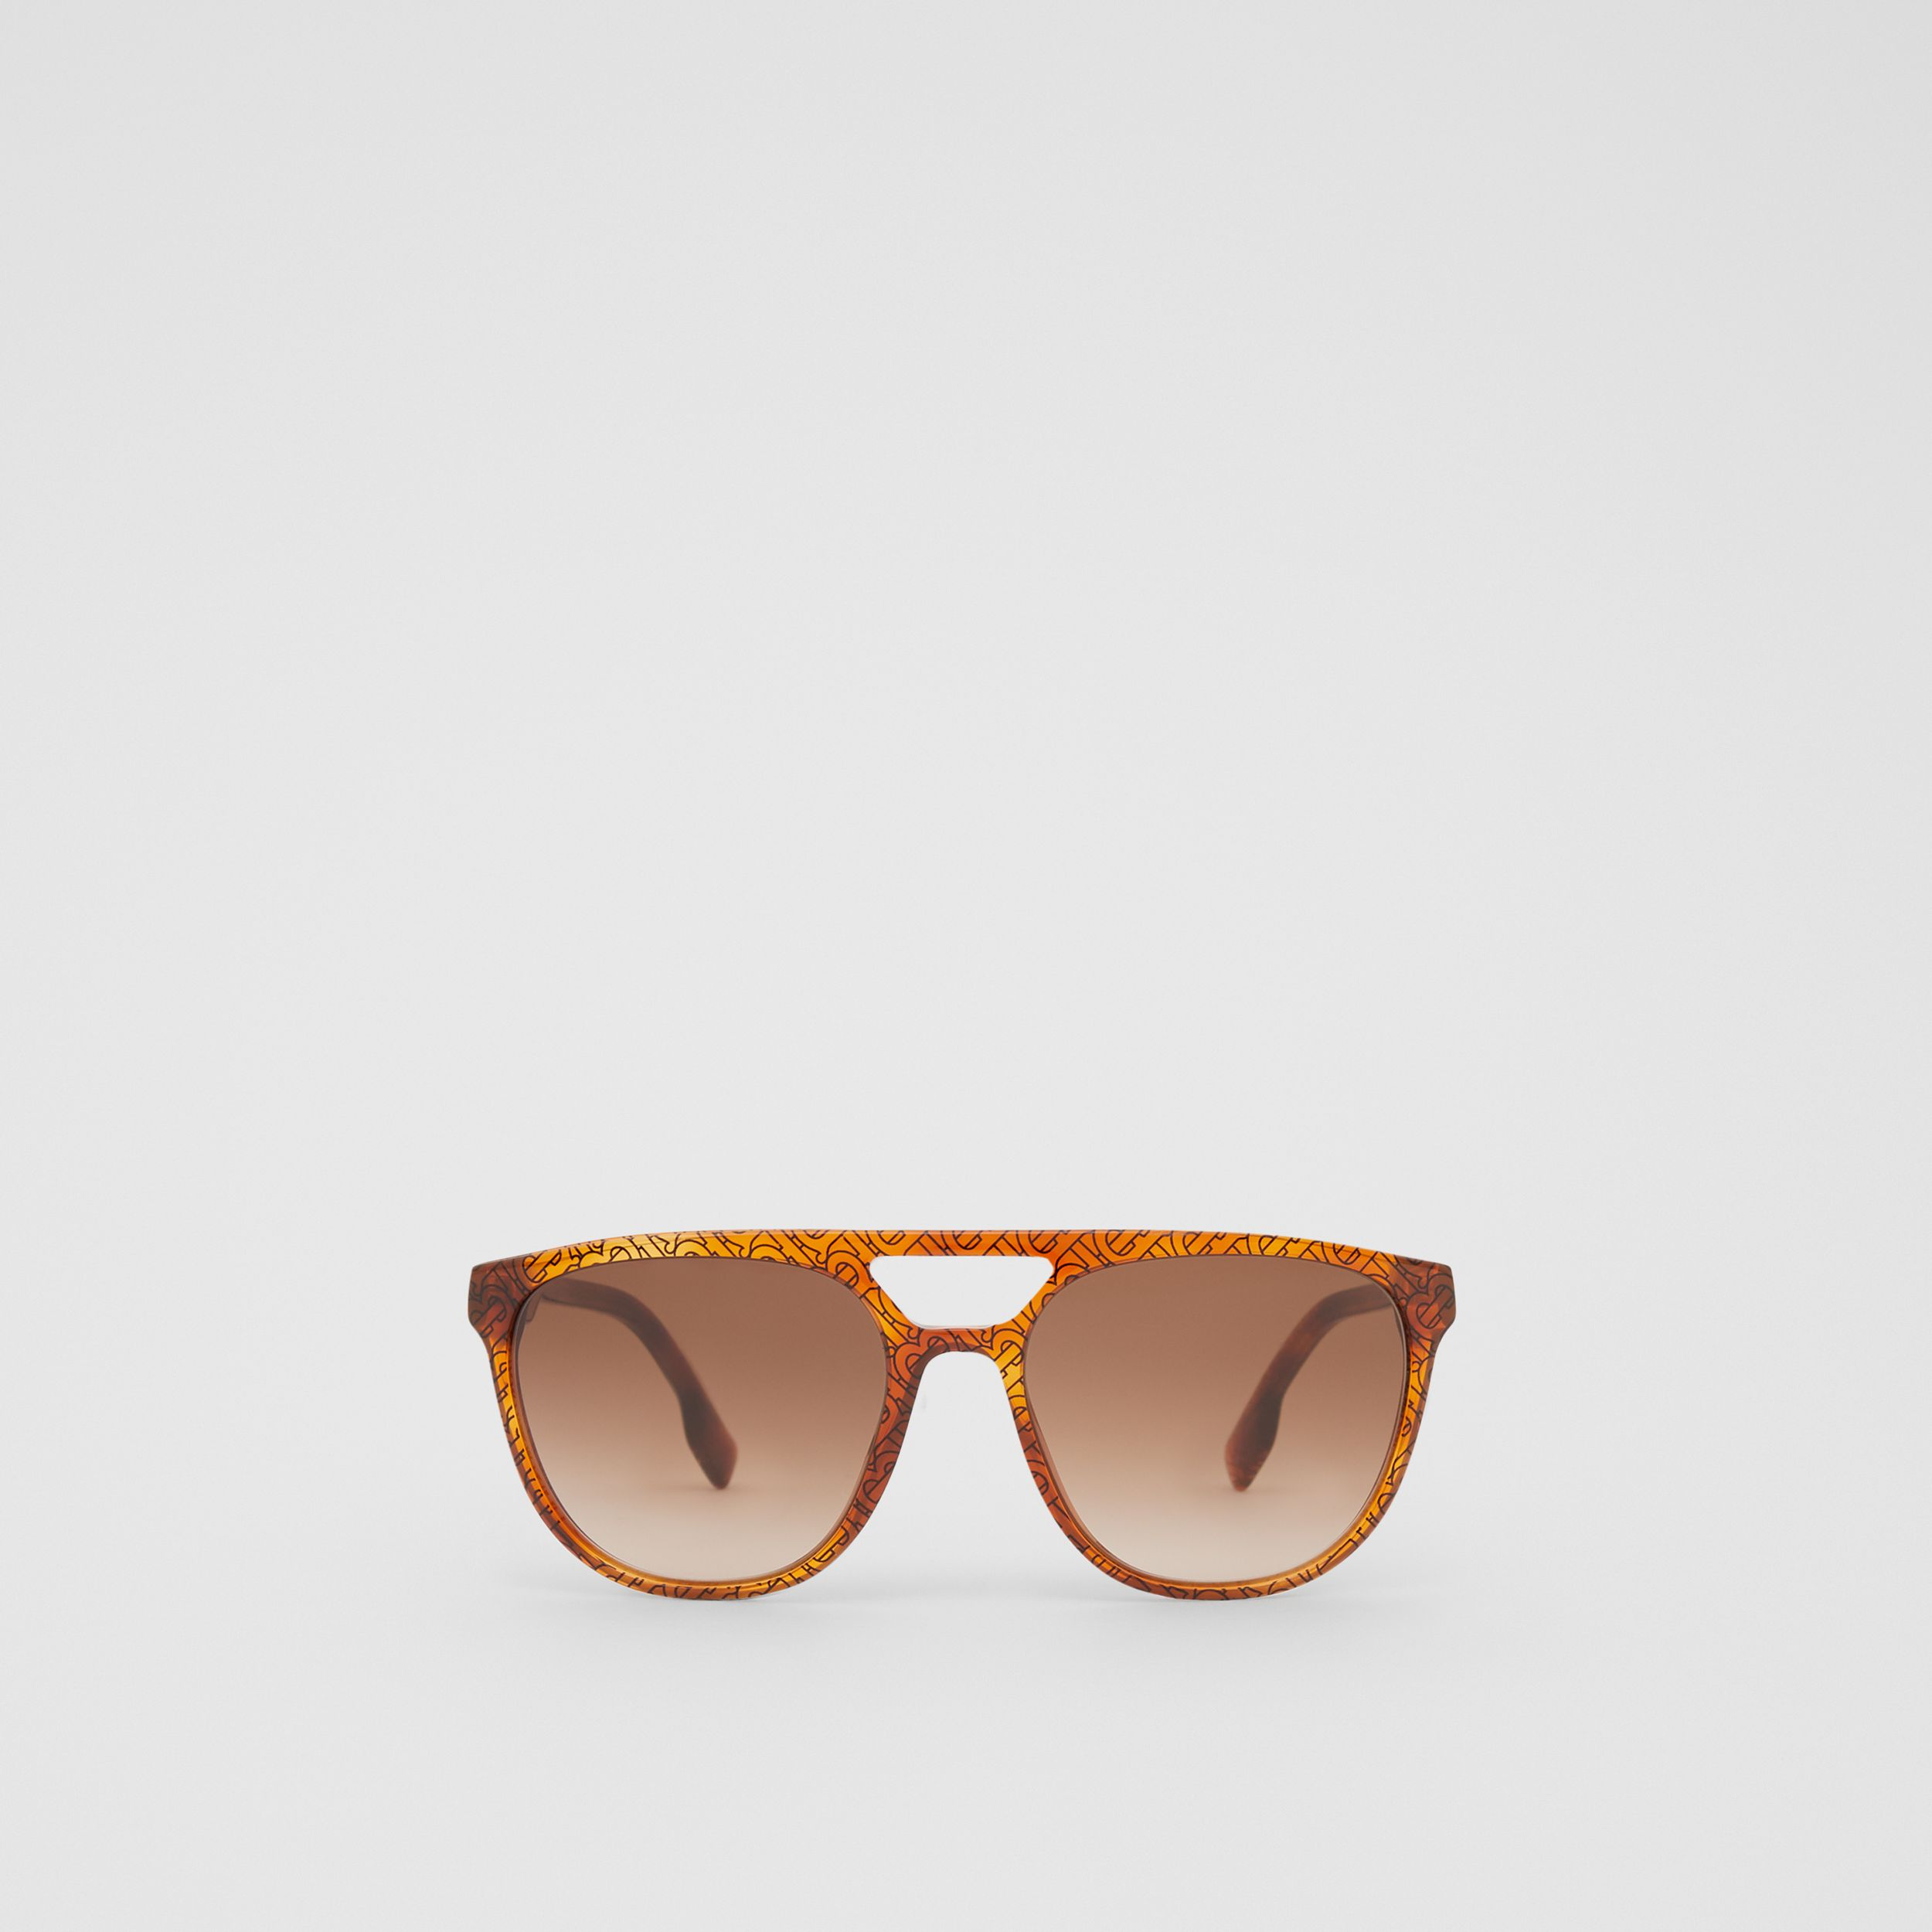 Navigator Sunglasses in Tortoiseshell Amber - Men | Burberry - 1